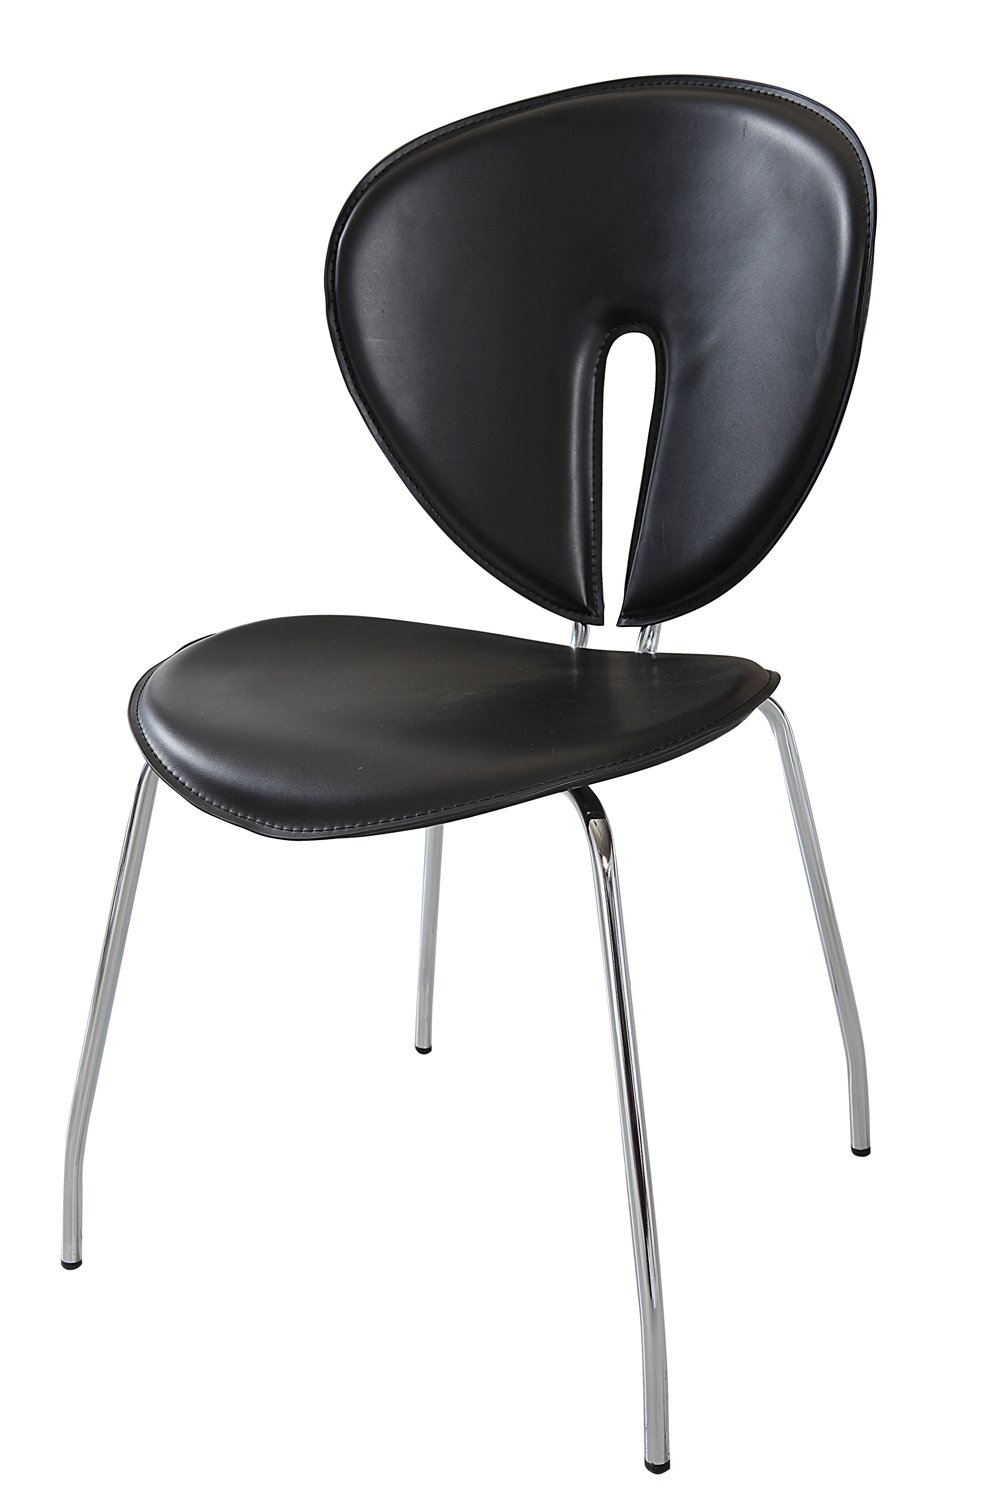 Modern Line Furniture 942Bx4 Contemporary Stackable Dining Room Chairs with Brush Chrome Bases for Restaurant/Bar/Nightclub/Hospitality Furniture, Black (Pack of 4)